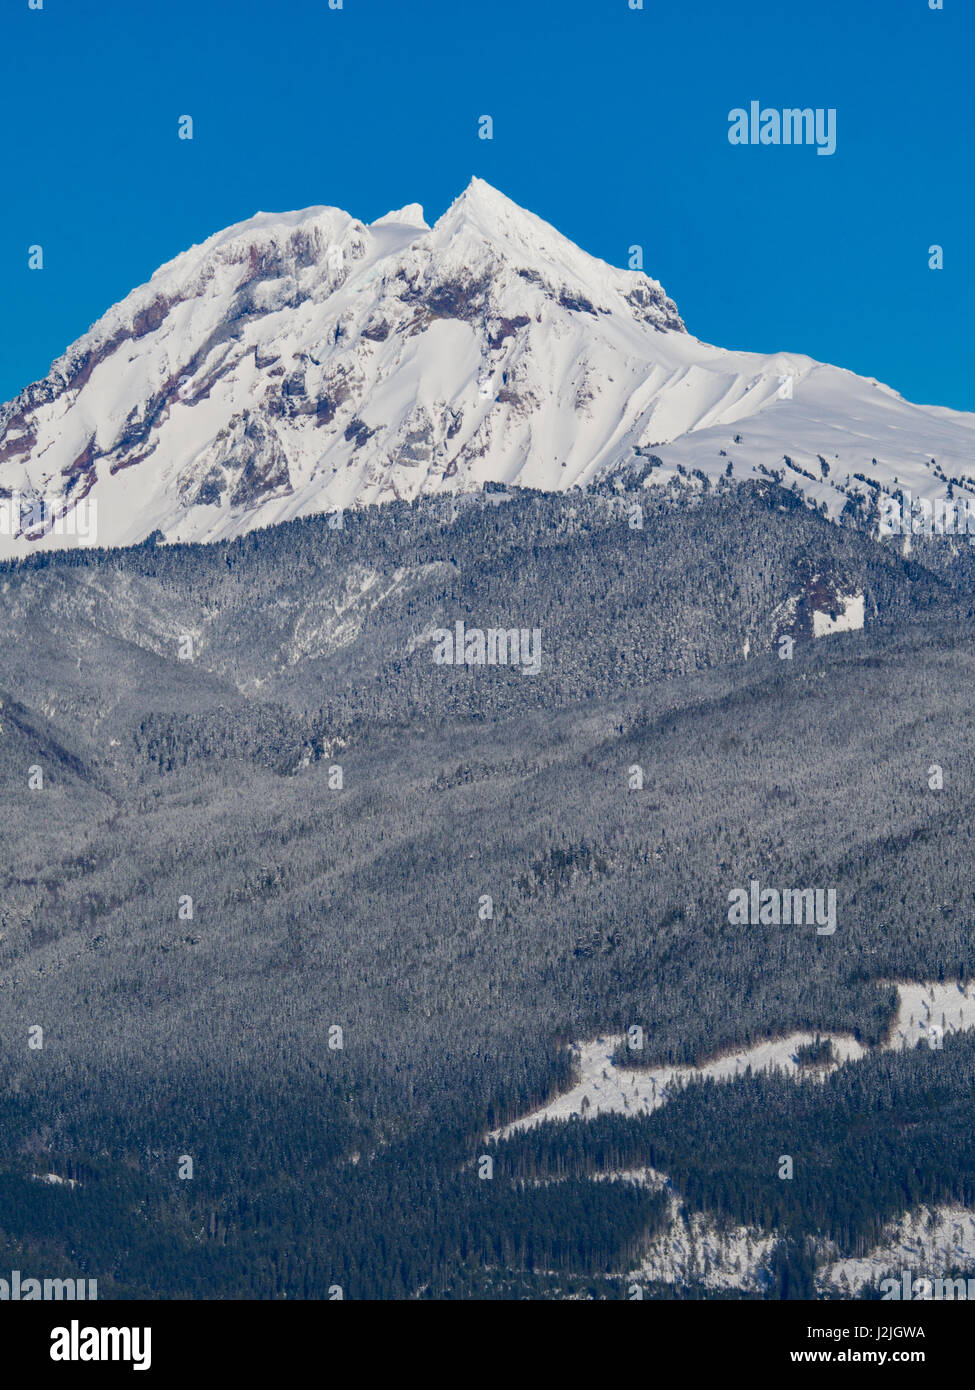 Mountain Peak from the Tantalus range in British Columbia. - Stock Image